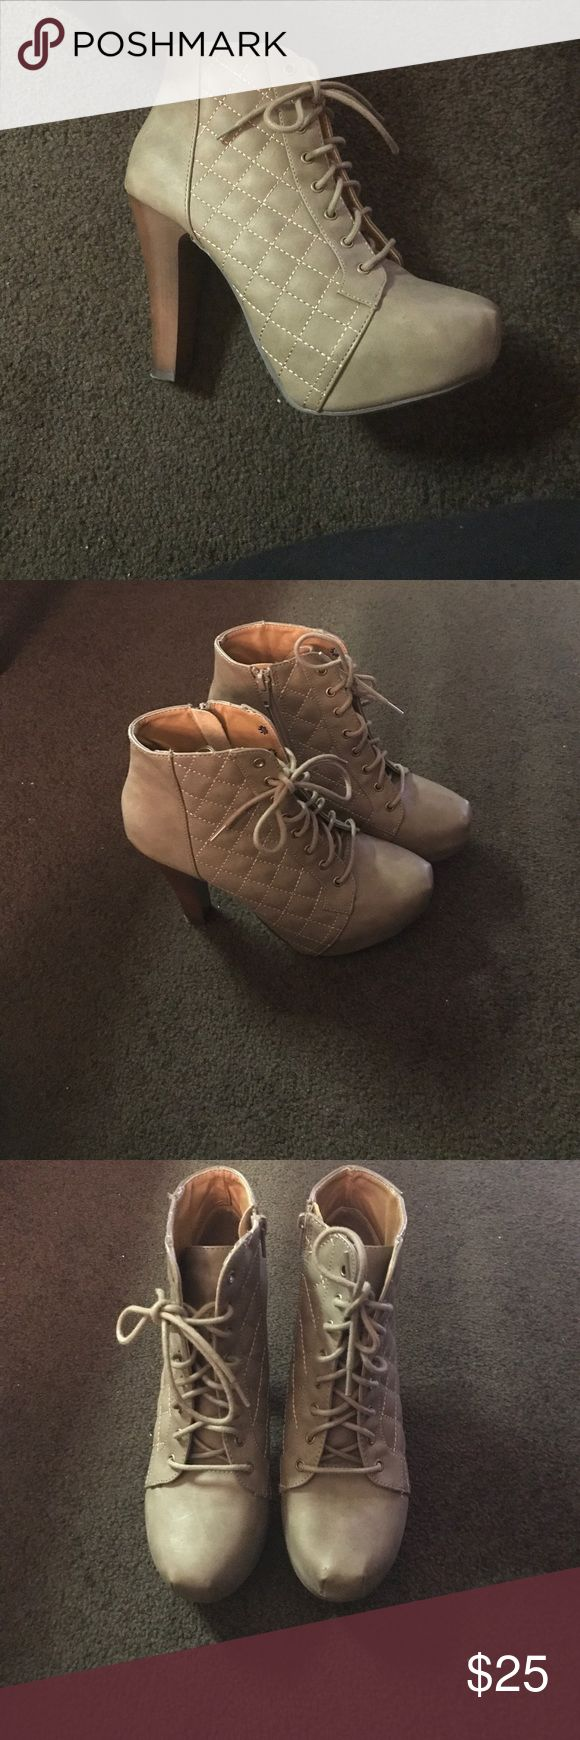 Charolette russe shoes Worn once Charlotte Ronson Shoes Ankle Boots & Booties